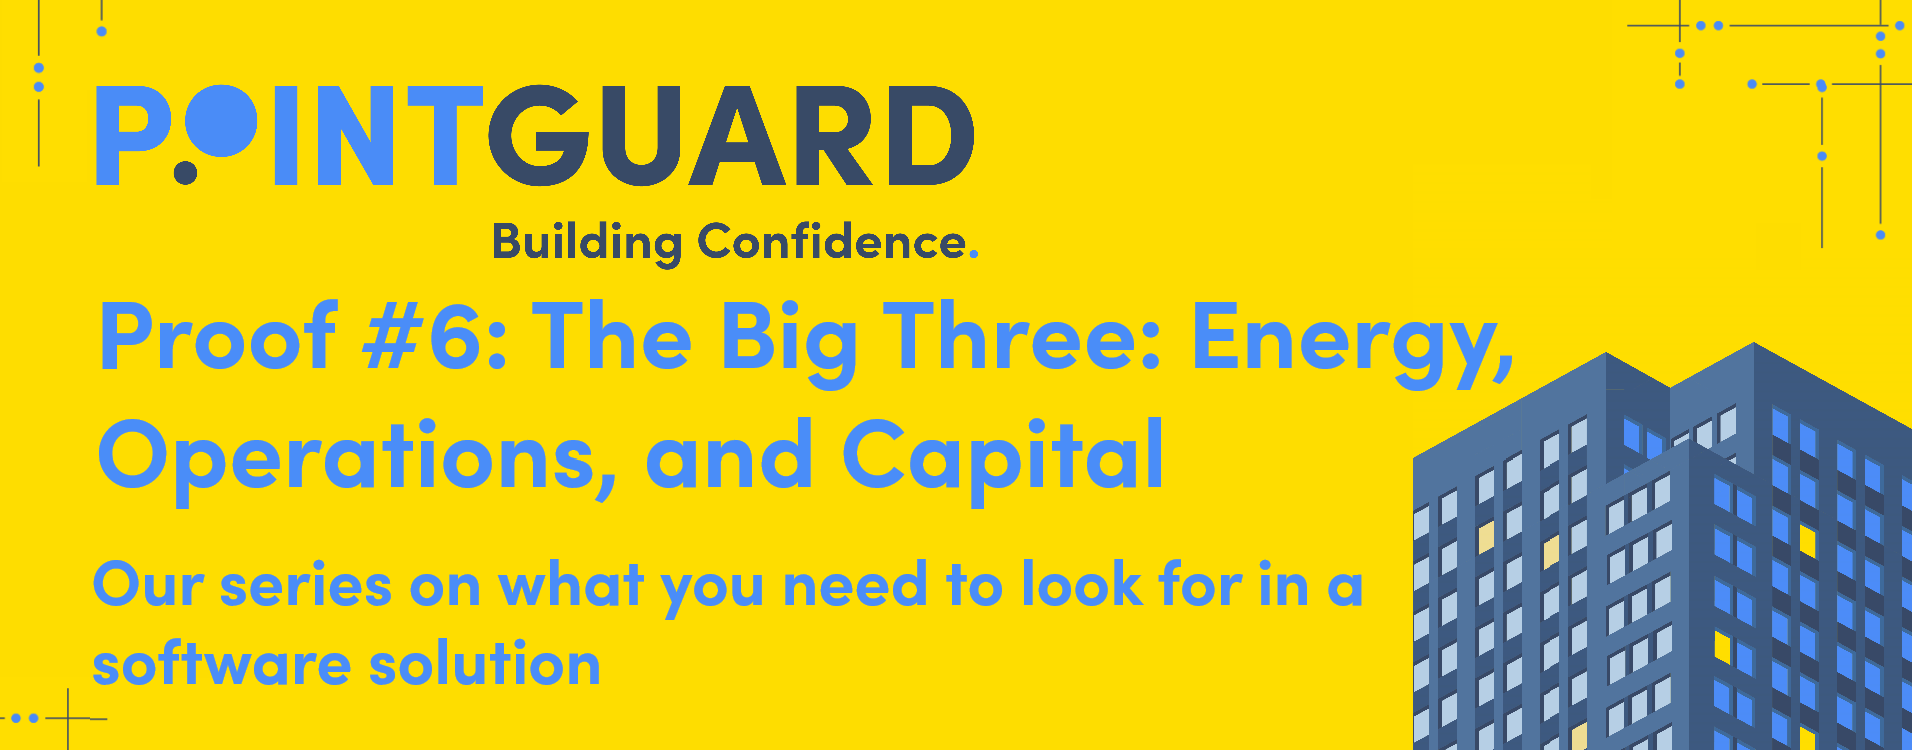 Proof #6: The Big Three: Energy, Operations, and Capital